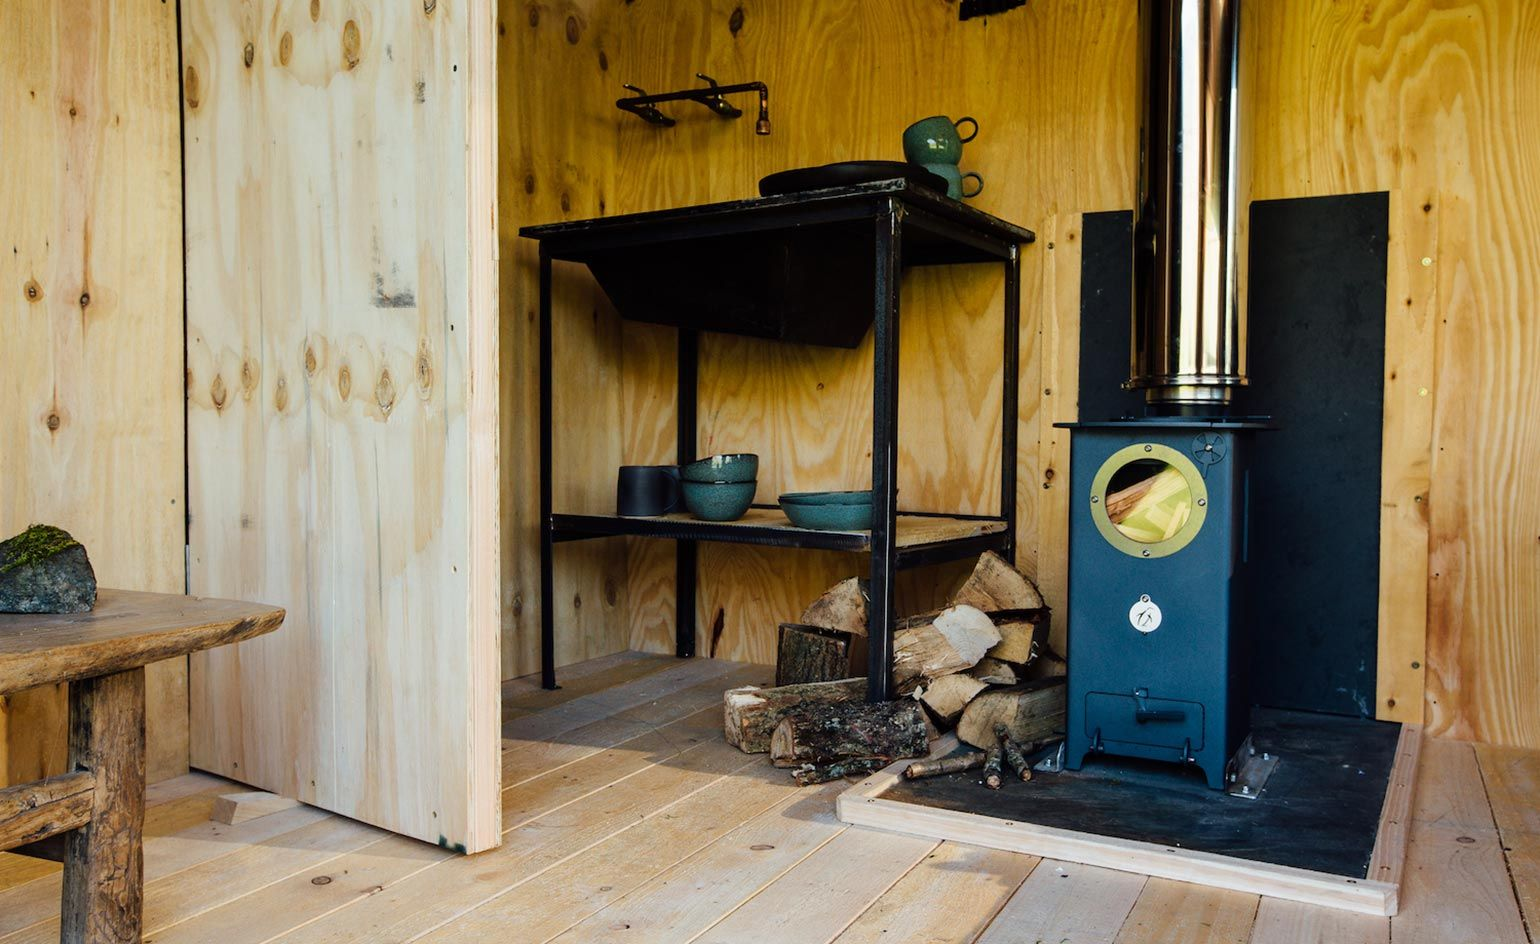 Cabin Class We Go Into The Wild At Wales First Pop Up Boutique Retreat Luxury Hotels Interior Boutique Retreats Hotels Design